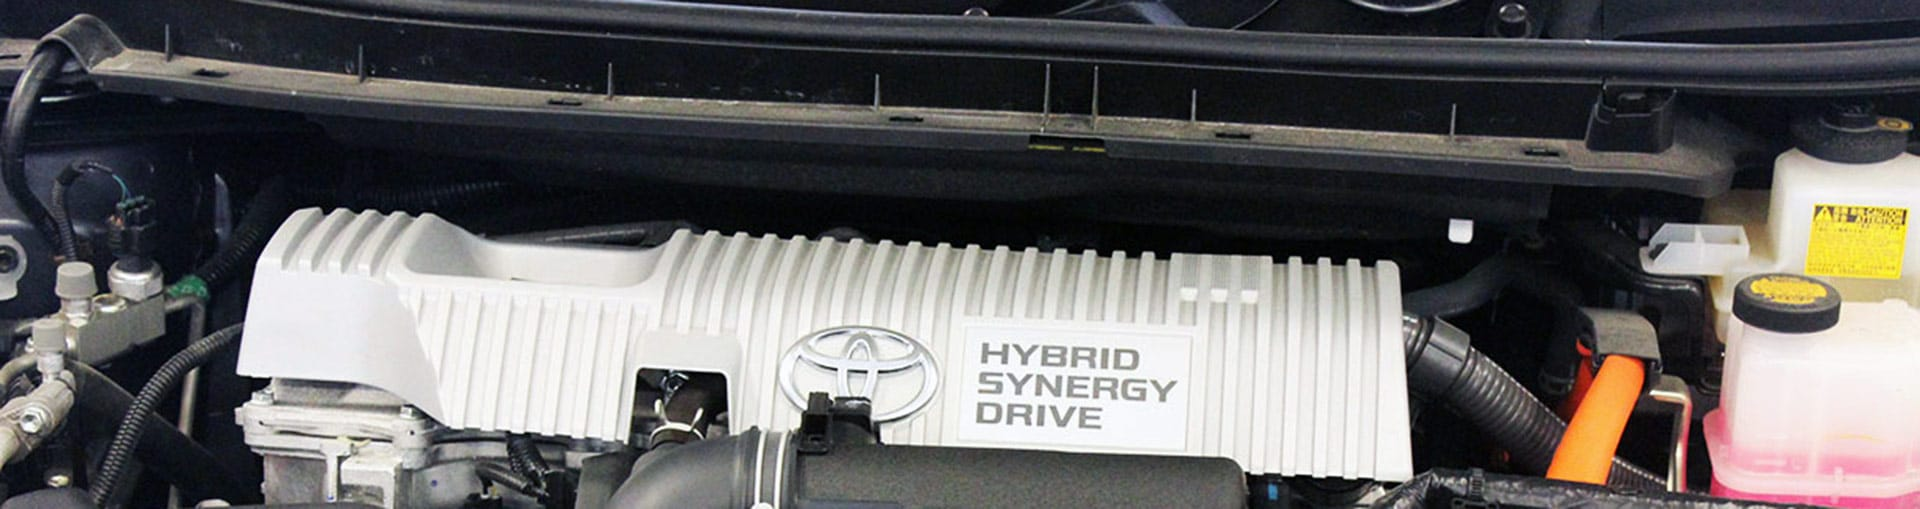 hybrid synergy drive battery